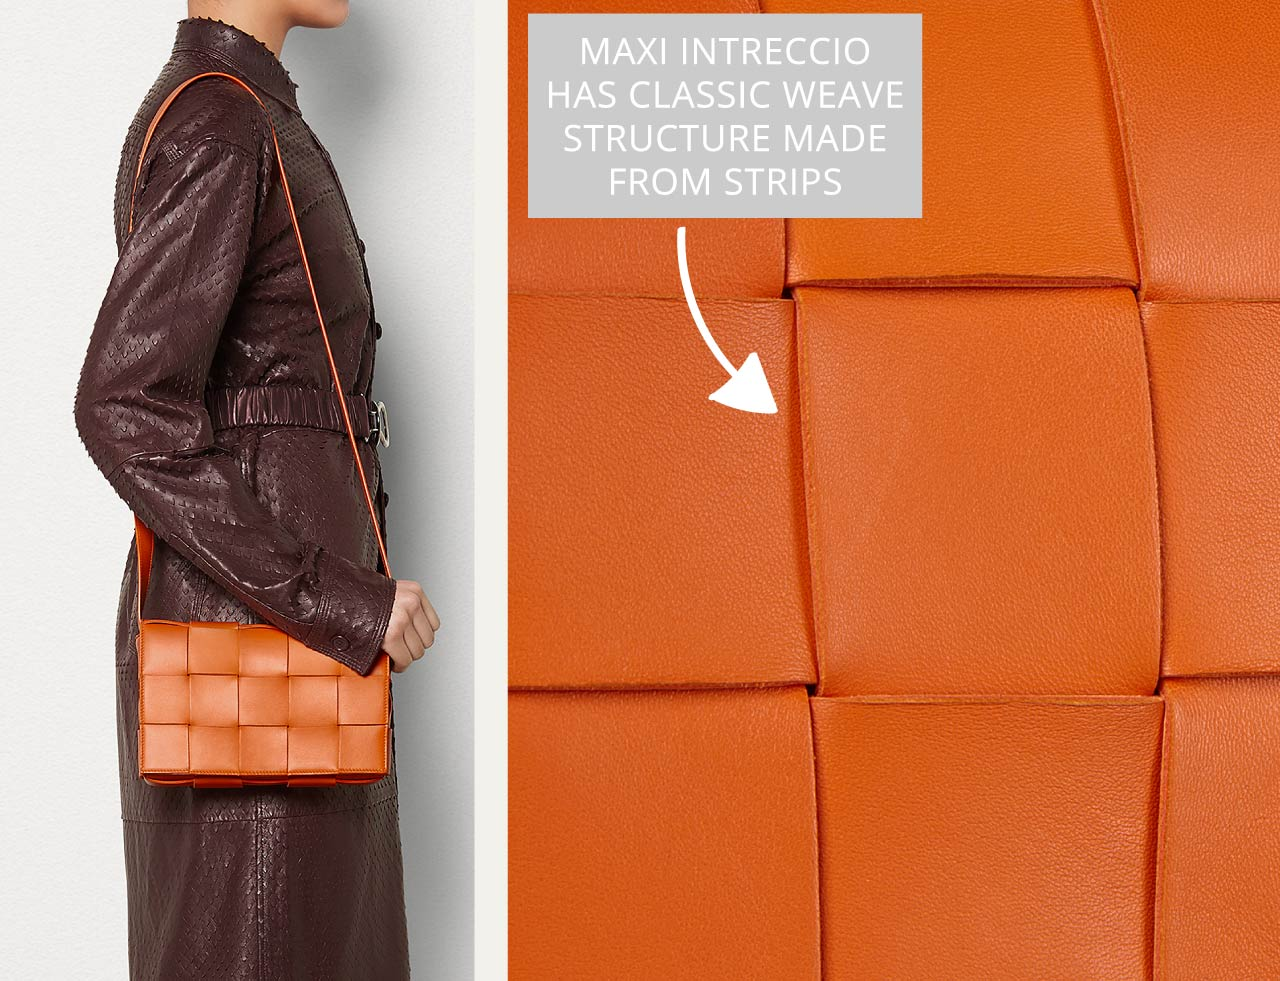 Bottega Veneta Intrecciato Weave | The Cutting Class. The Cassette bag with Intreccio maxi weave in Burned Orange.